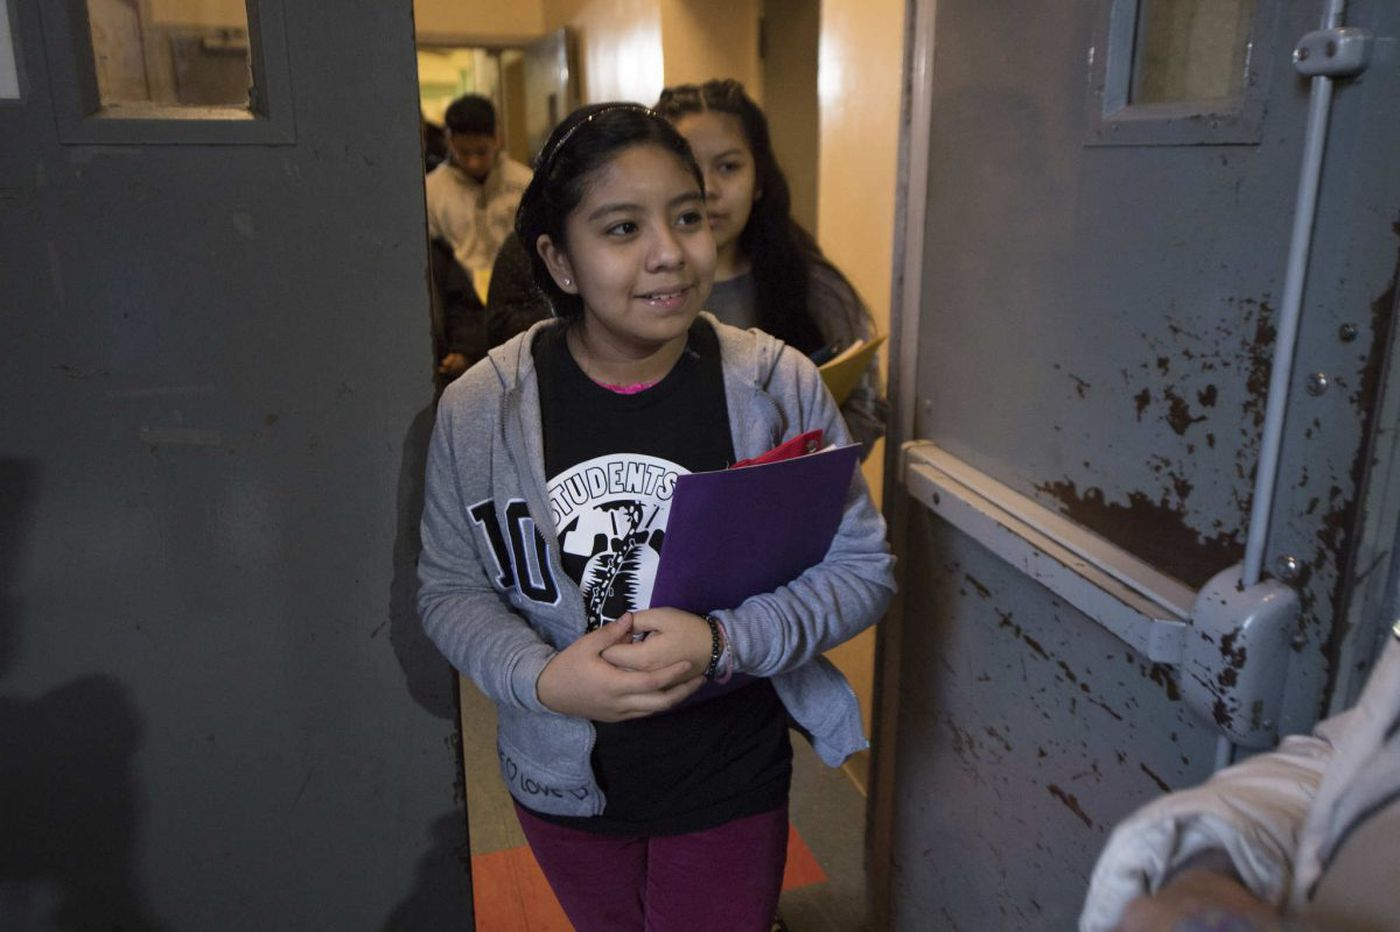 Teen immigrants face unique health challenges